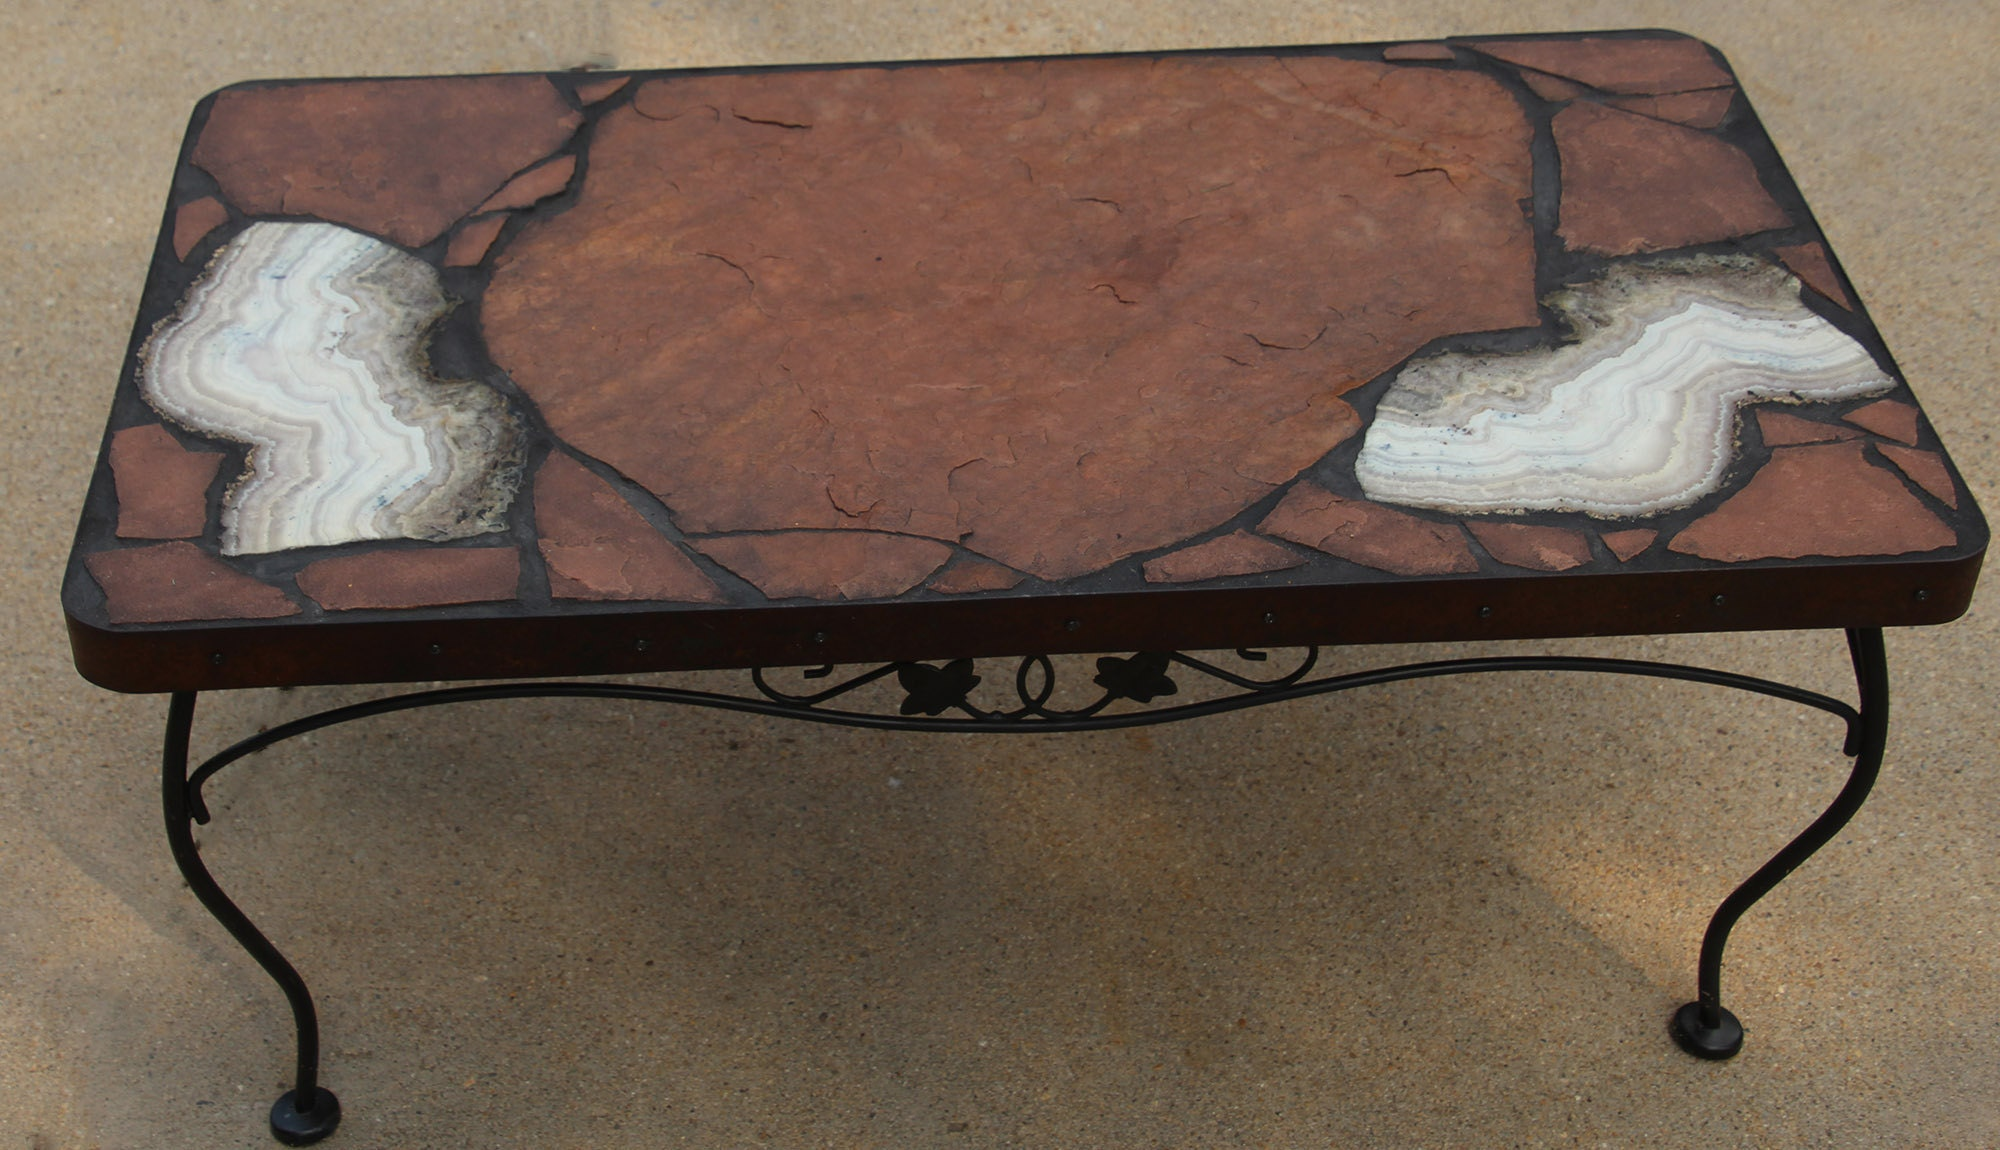 Sowbelly agate coffee table on a recycled base